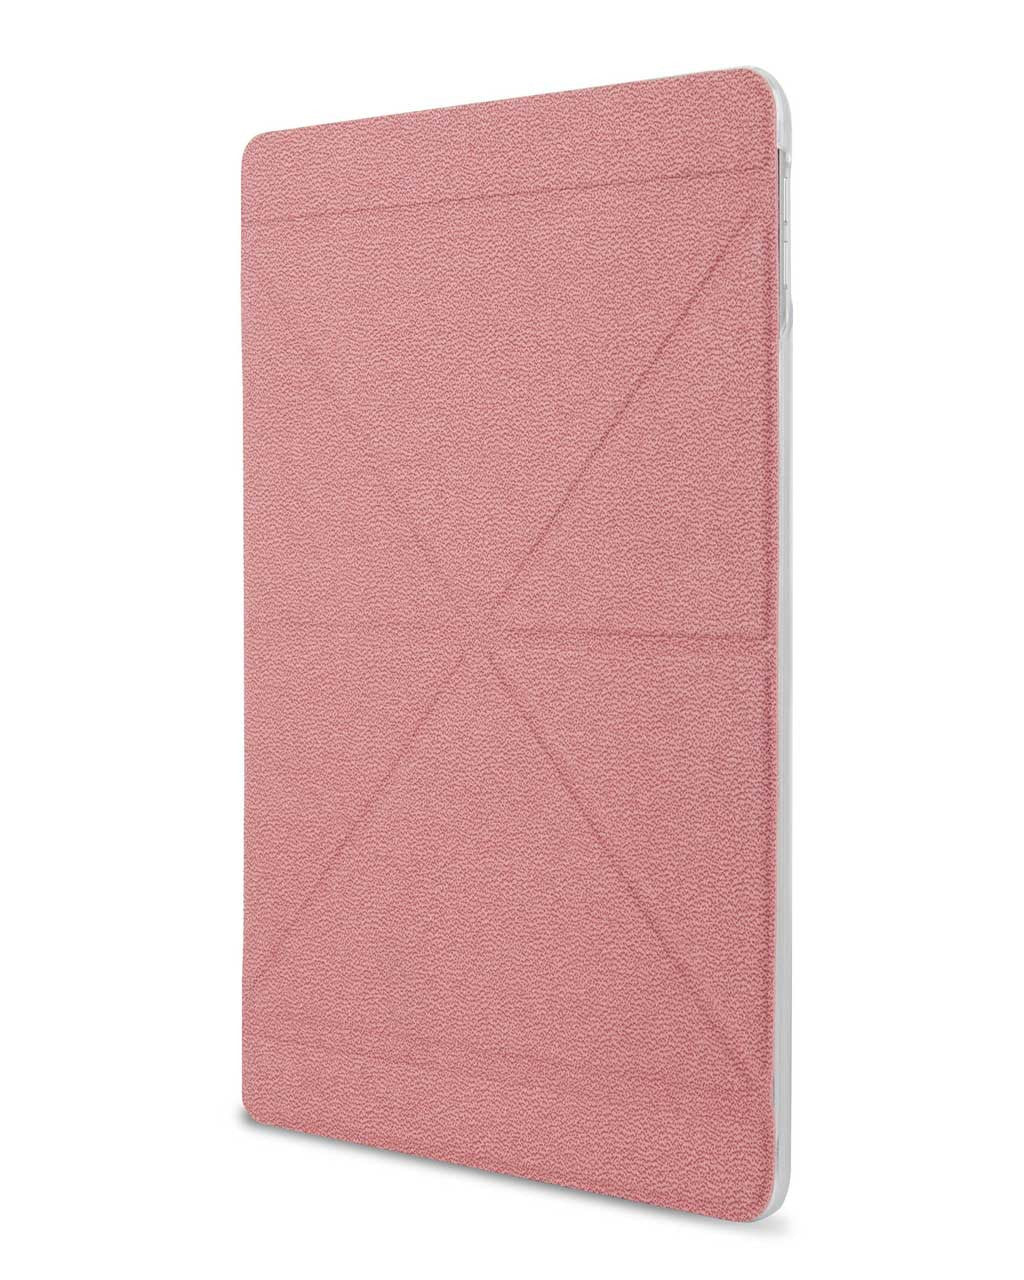 reputable site 2bc5f 2cc42 Moshi VersaCover – iPad Air 2 Stand Case with Origami Cover – BrandsWalk